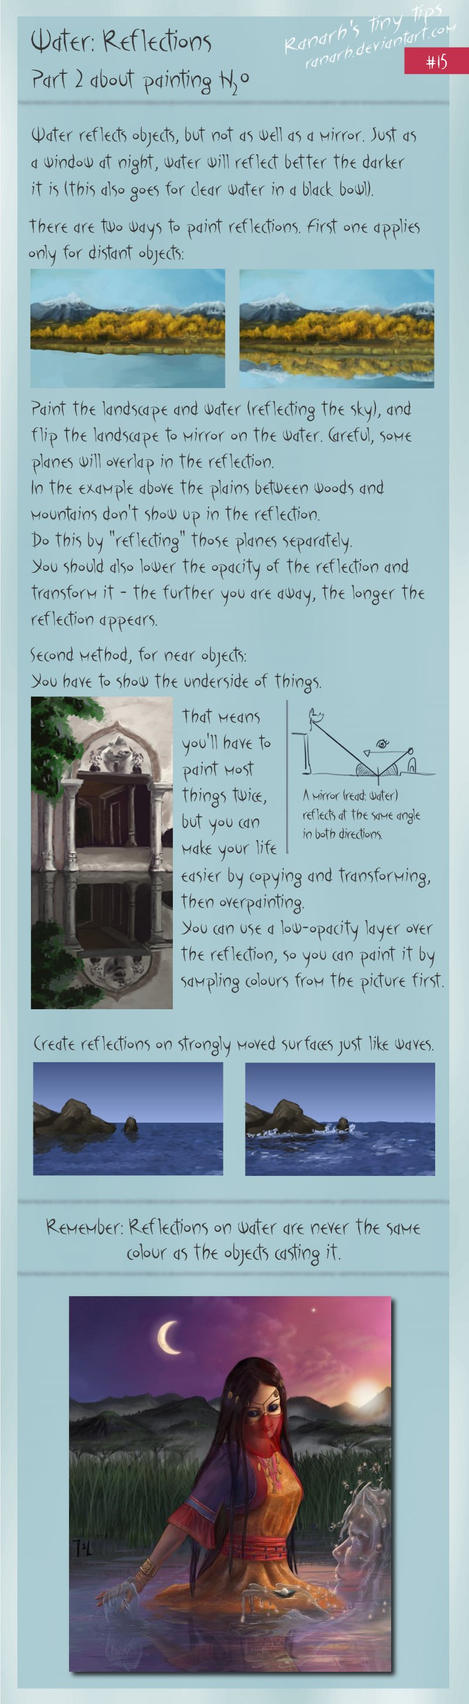 Tiny tips: Water: Reflections by Ranarh